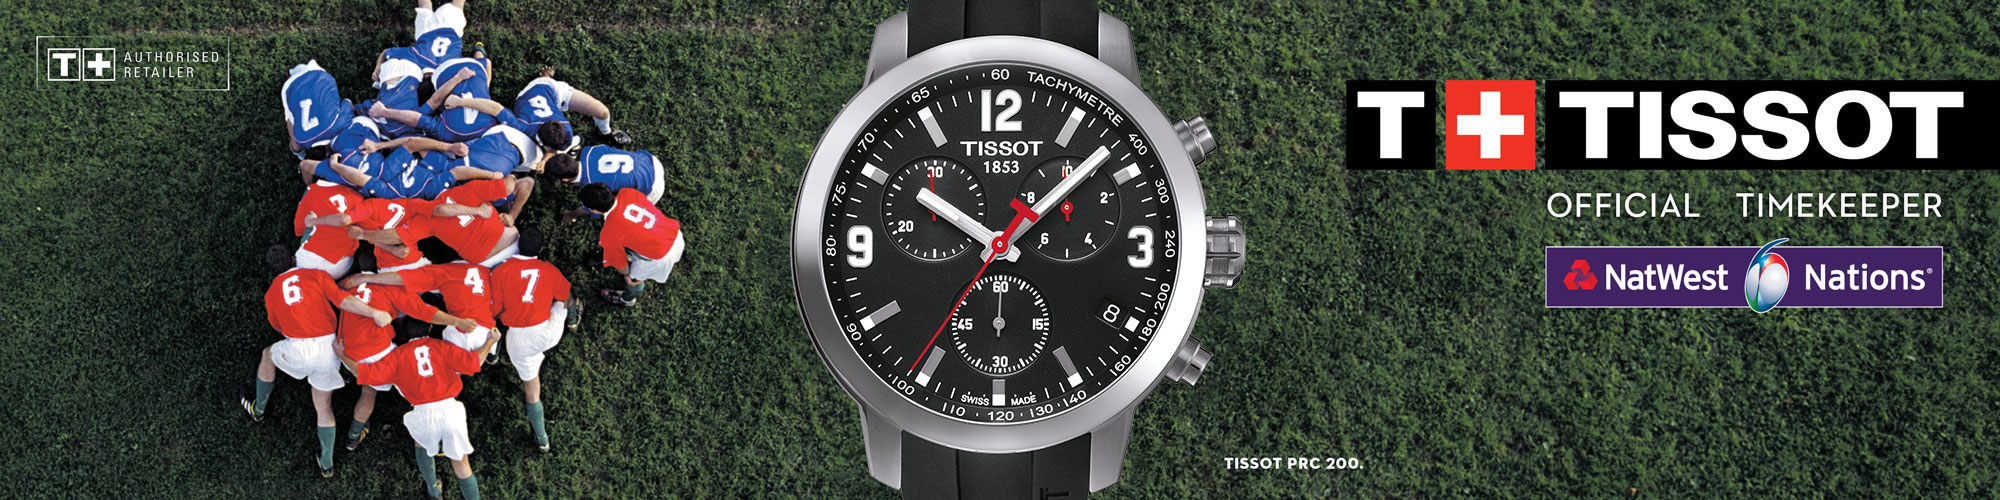 Tissot | Official Timekeeper of The 6 Nations